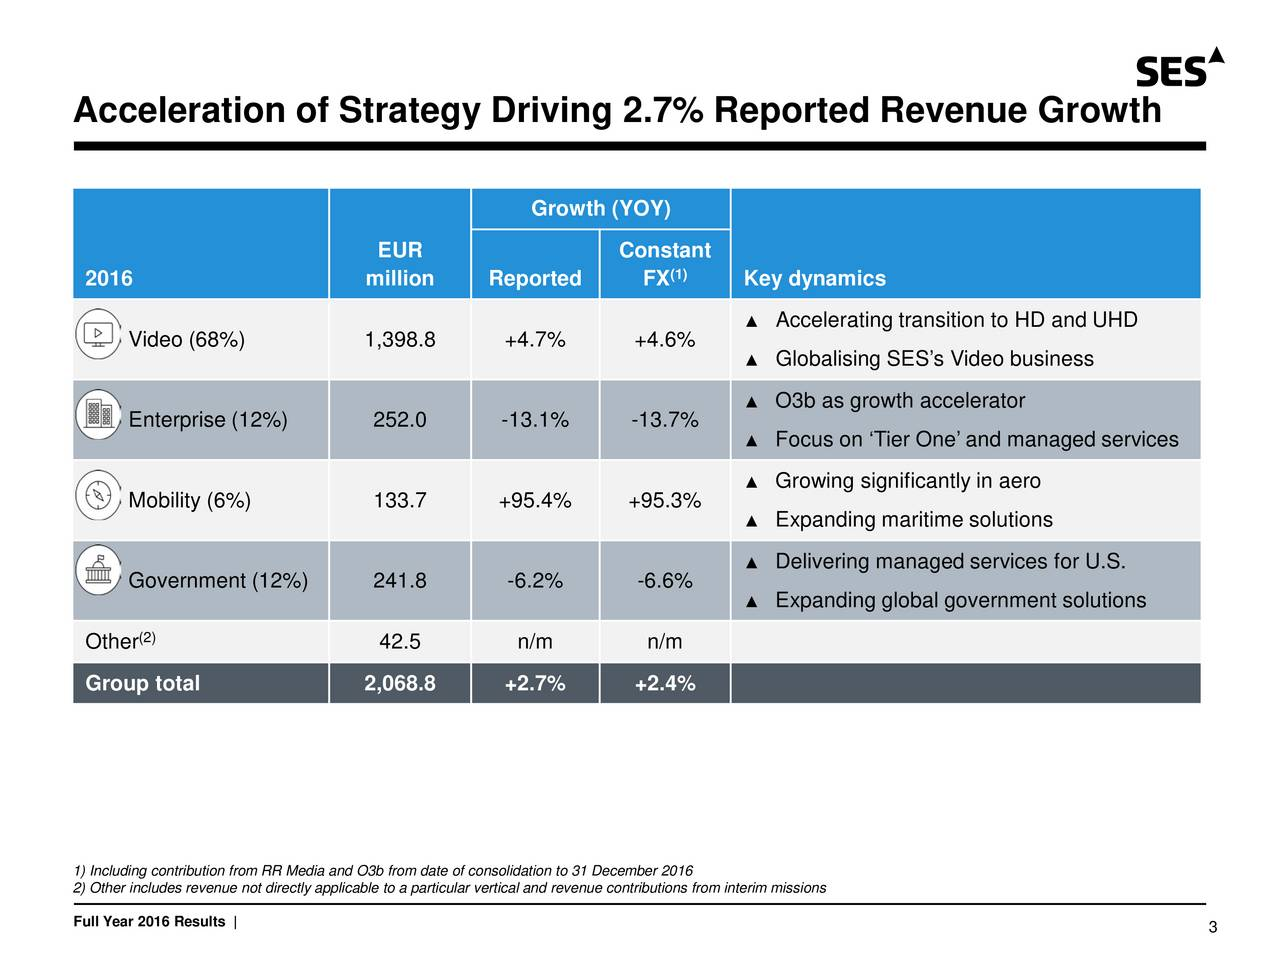 Growth (YOY) EUR Constant 2016 million Reported FX (1) Key dynamics Accelerating transition to HD and UHD Video (68%) 1,398.8 +4.7% +4.6% Globalising SESs Video business O3b as growth accelerator Enterprise (12%) 252.0 -13.1% -13.7% Focus on Tier One and managed services Growing significantly in aero Mobility (6%) 133.7 +95.4% +95.3% Expanding maritime solutions Delivering managed services for U.S. Government (12%) 241.8 -6.2% -6.6% Expanding global government solutions (2) Other 42.5 n/m n/m Group total 2,068.8 +2.7% +2.4% 1) Including contribution from RR Media and O3b from date of consolidation to 31 December 2016 2) Other includes revenue not directly applicable to a particular vertical and revenue contributions from interim missions Full Year 2016 Results | 3